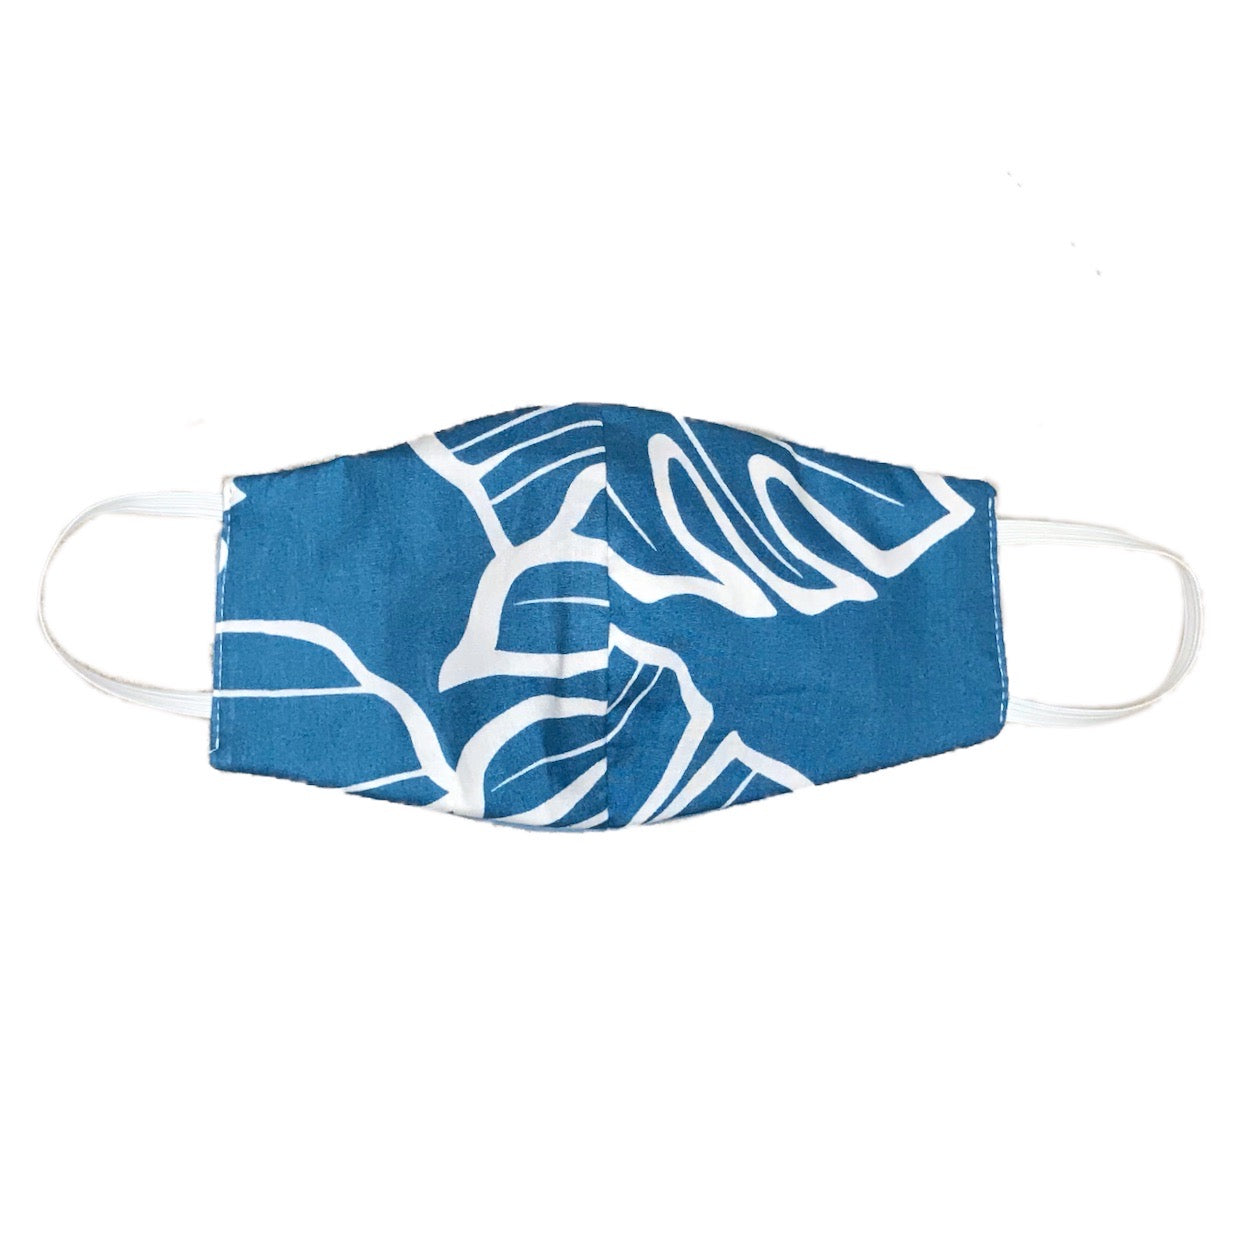 PROTECTIVE FACEMASK (MONSTERA x BABY BLUE with WHITE)